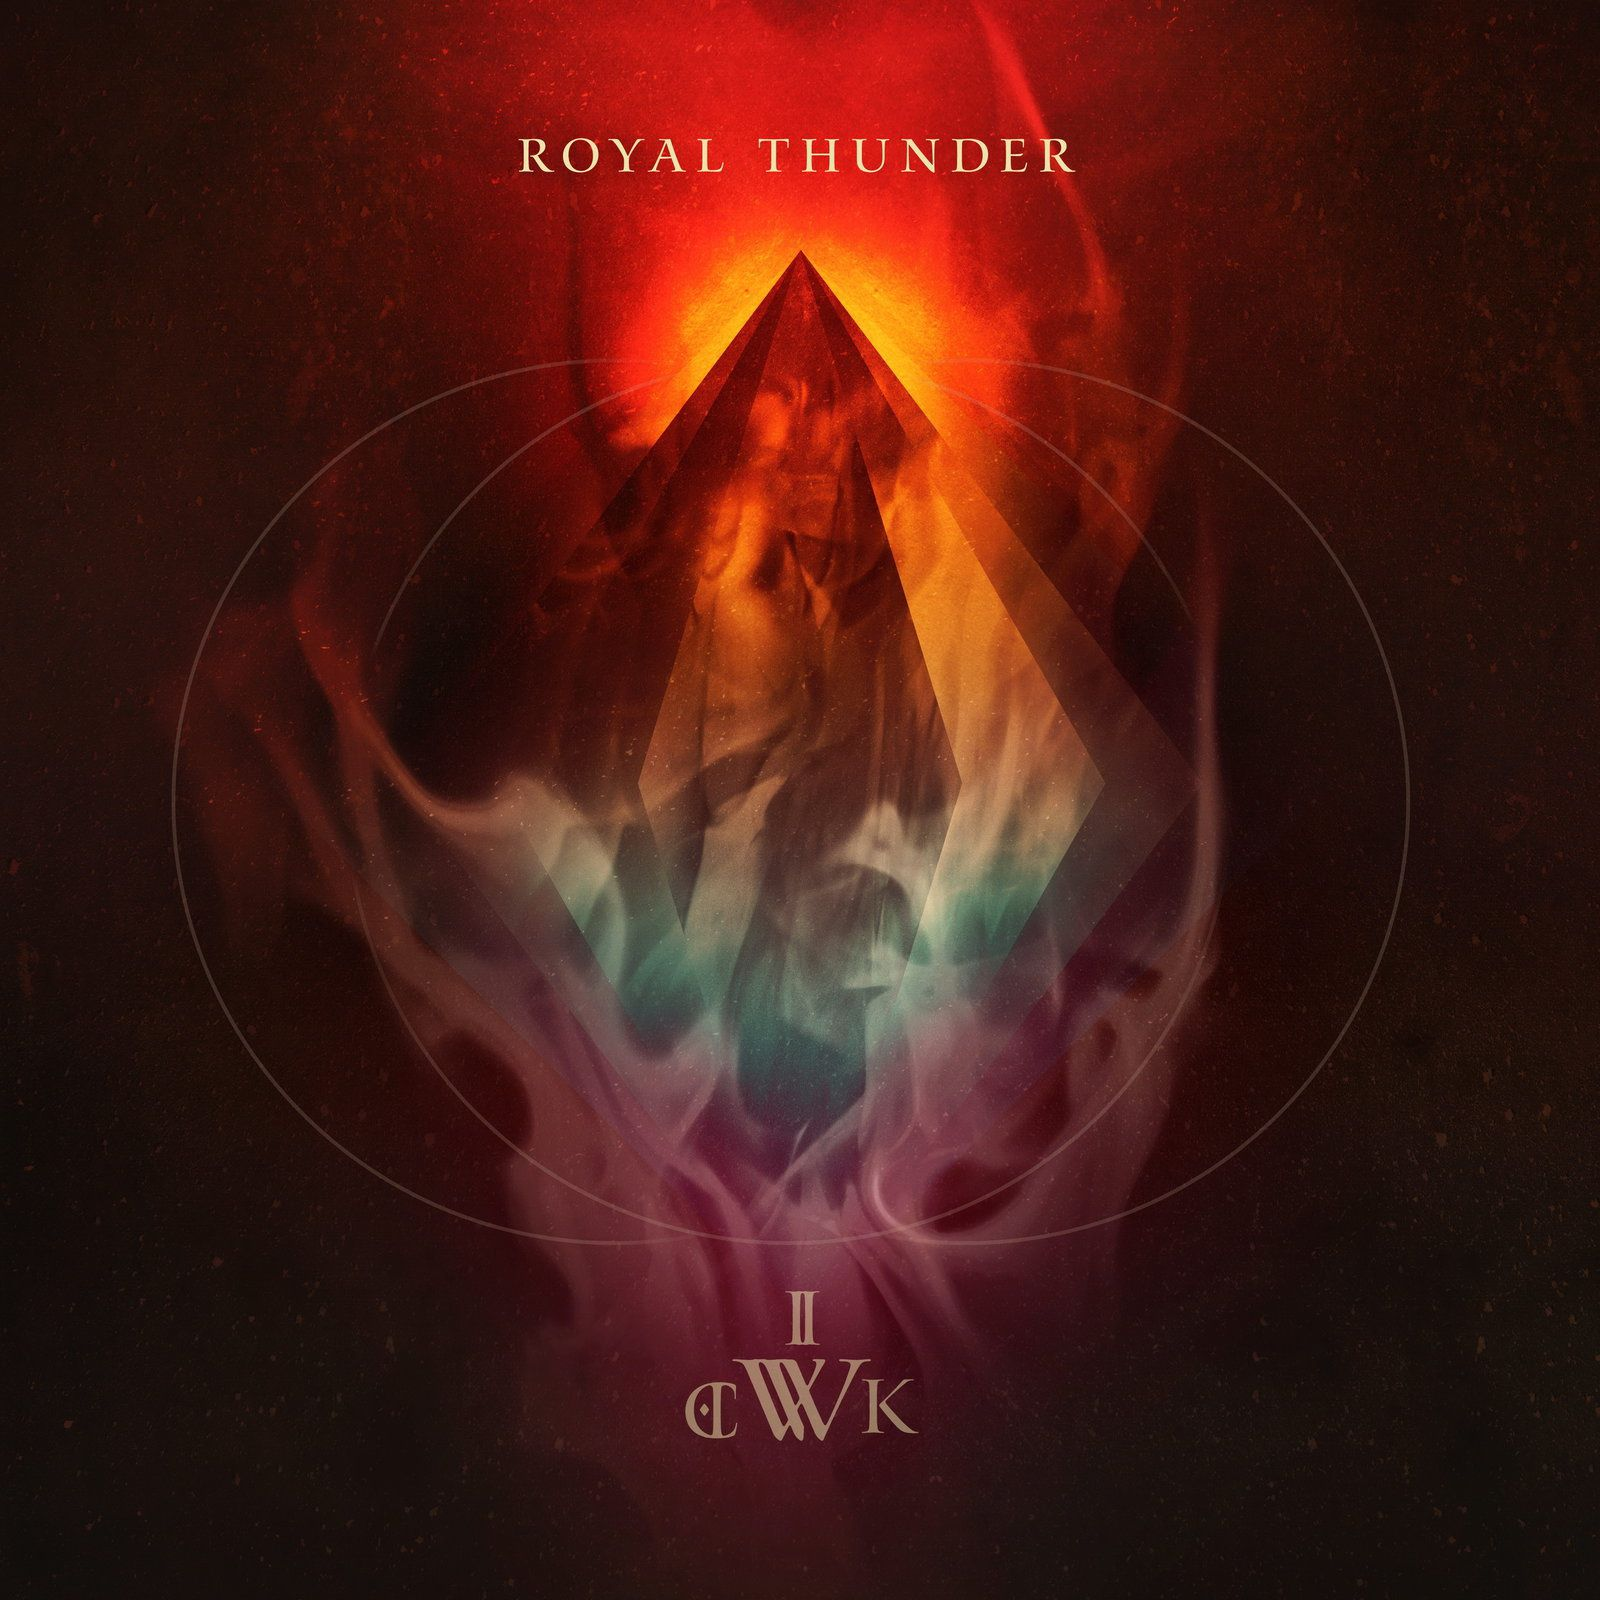 Interview with Mlny and Josh from ROYAL THUNDER